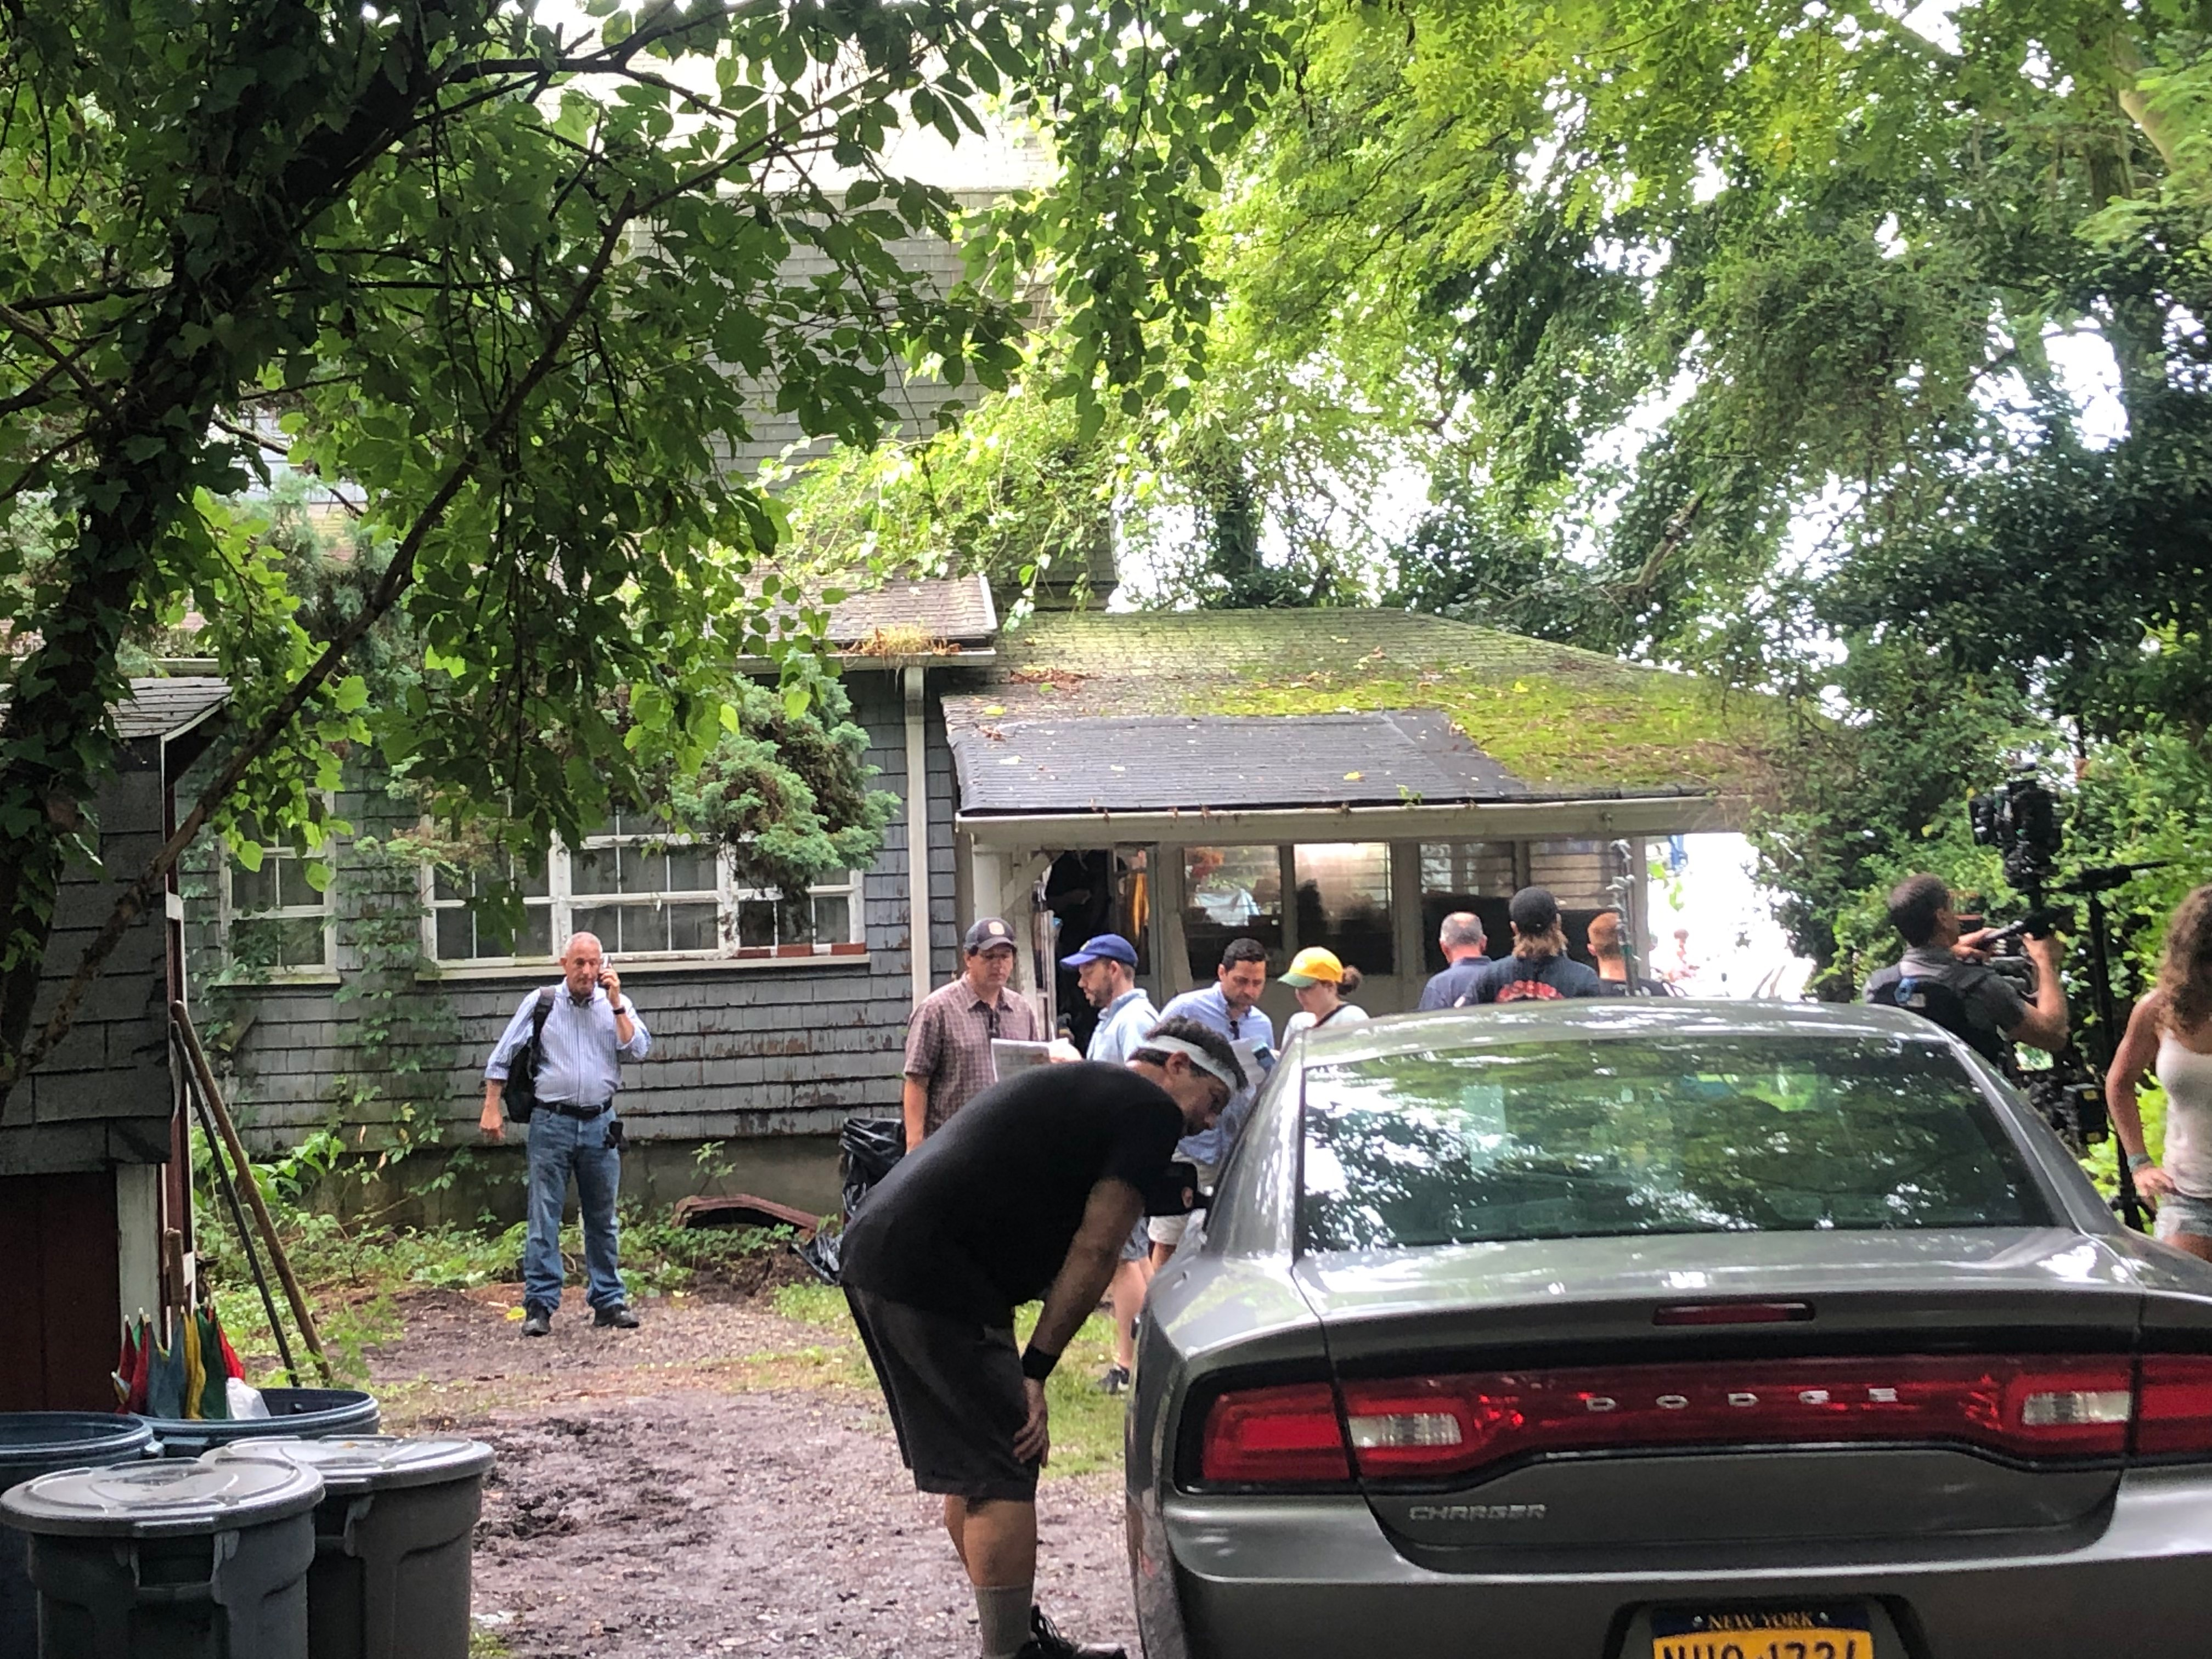 On set: CBS's 'Blue Bloods' films in Huguenot, Donnie Wahlberg drives on Staten Island